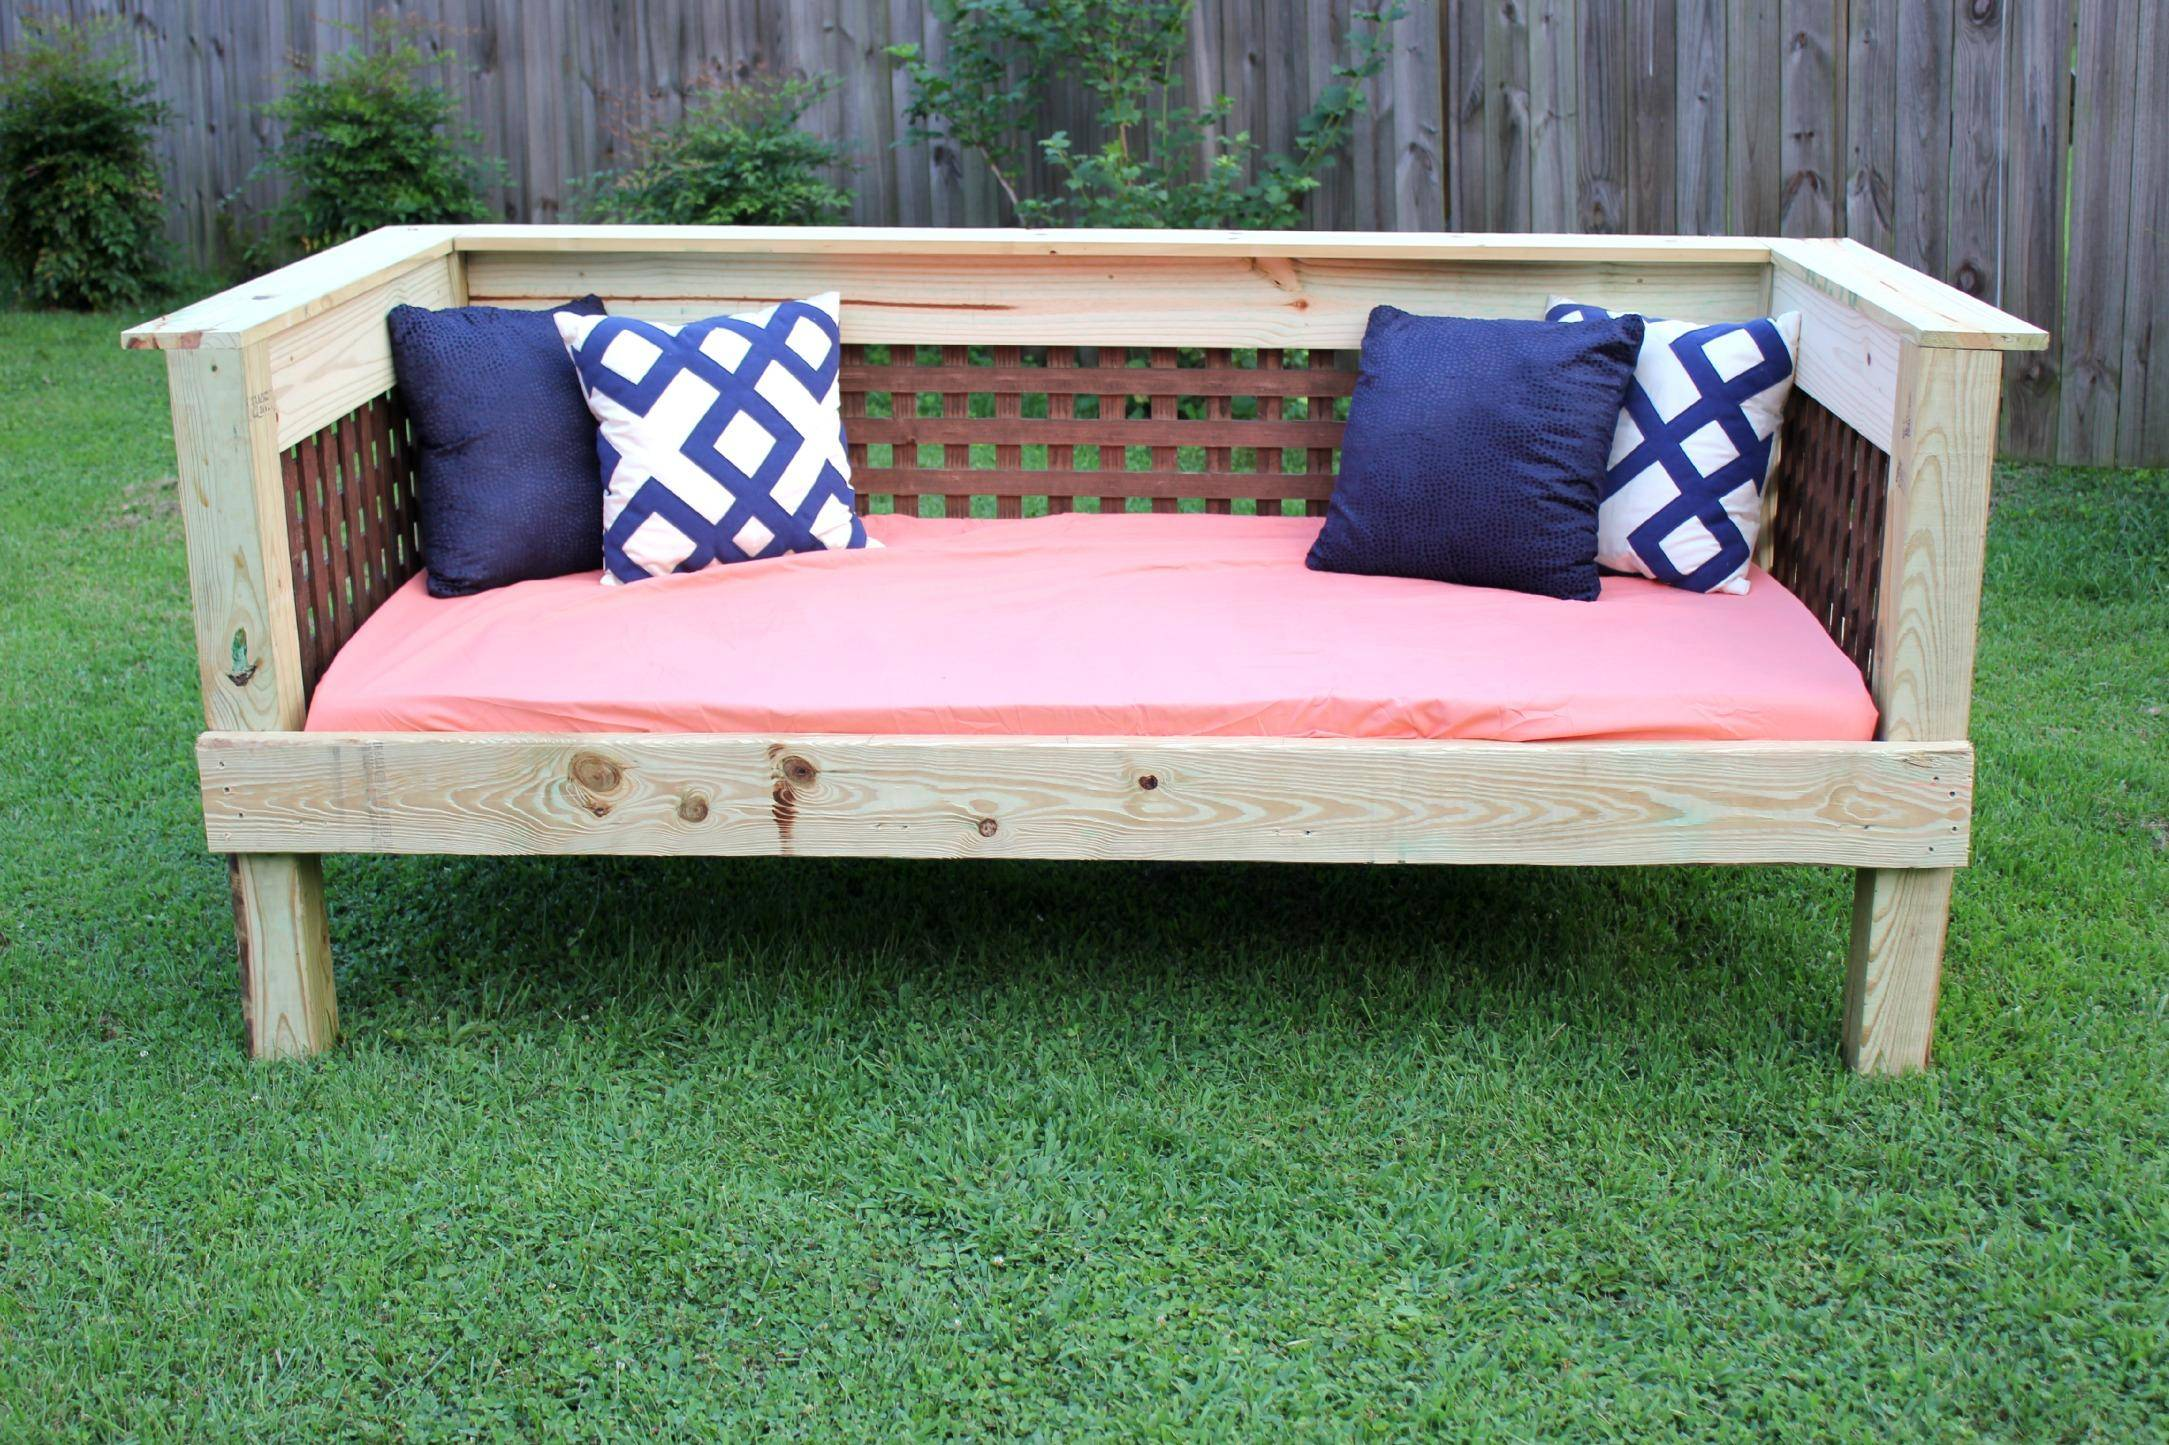 The diy designer outdoor daybed noogatoday